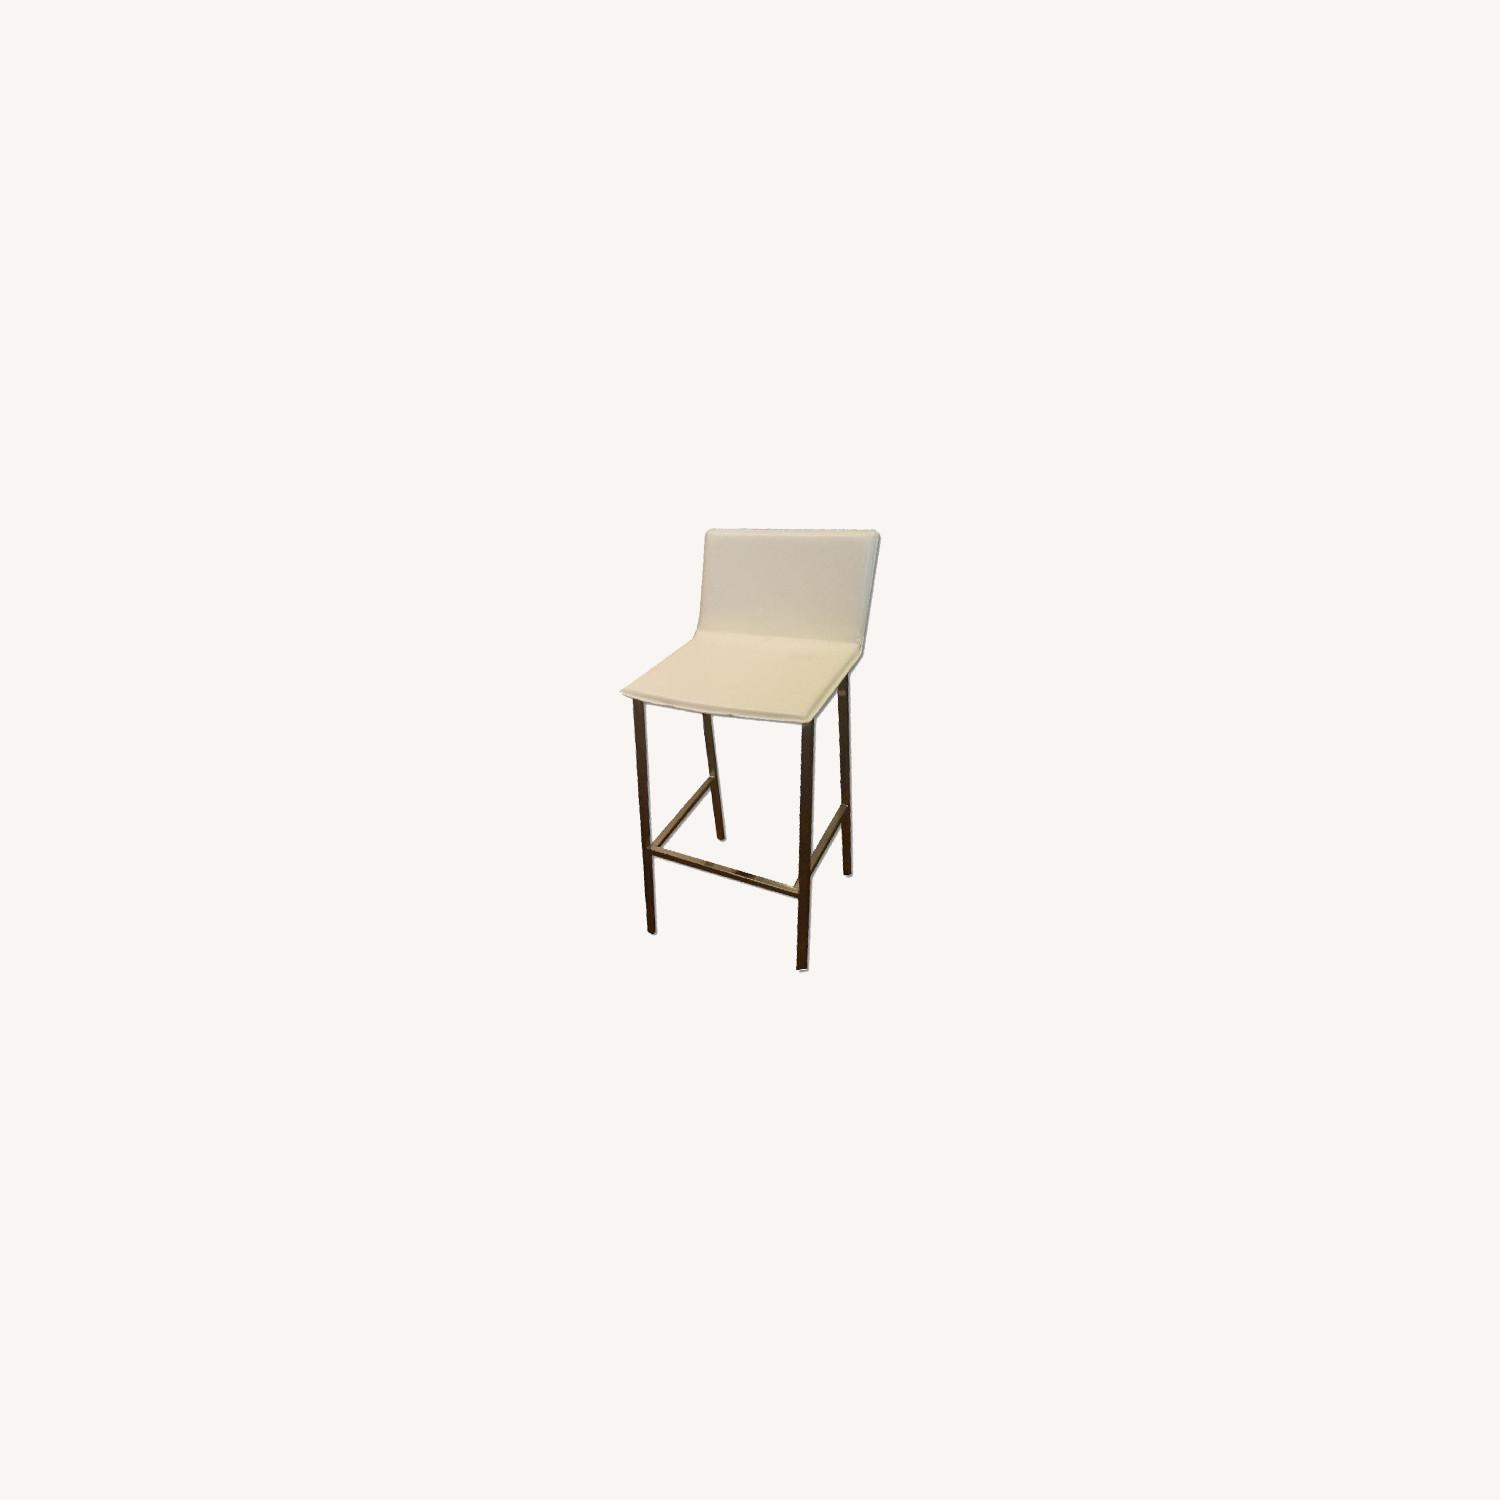 CB2 Phoenix Ivory Bar Height Chairs (set of 2) - image-0